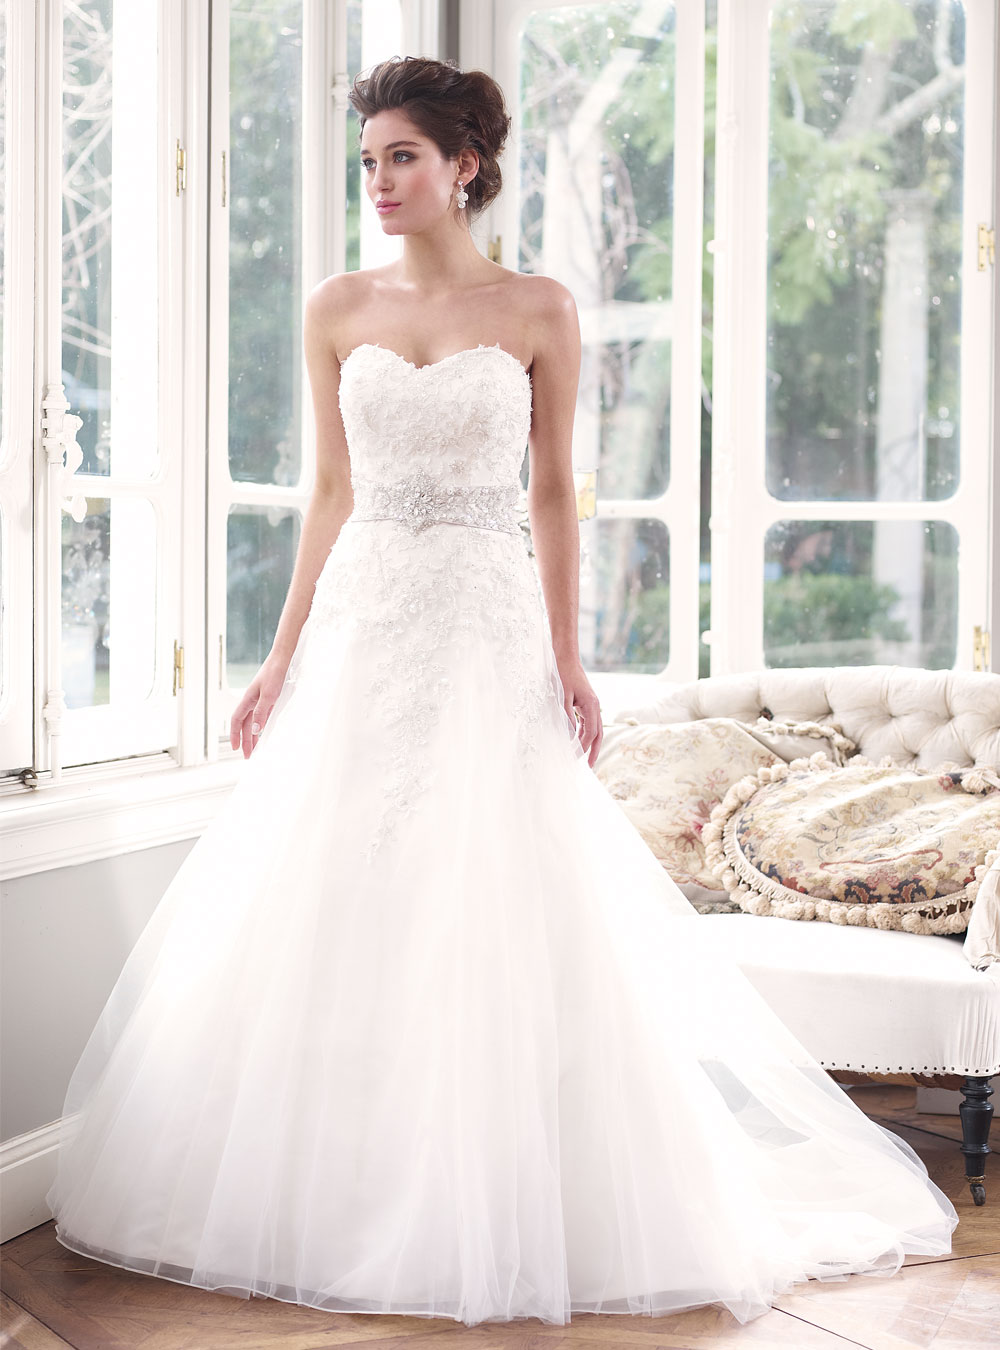 Arianna Wedding Dress | LUV Bridal & Formal